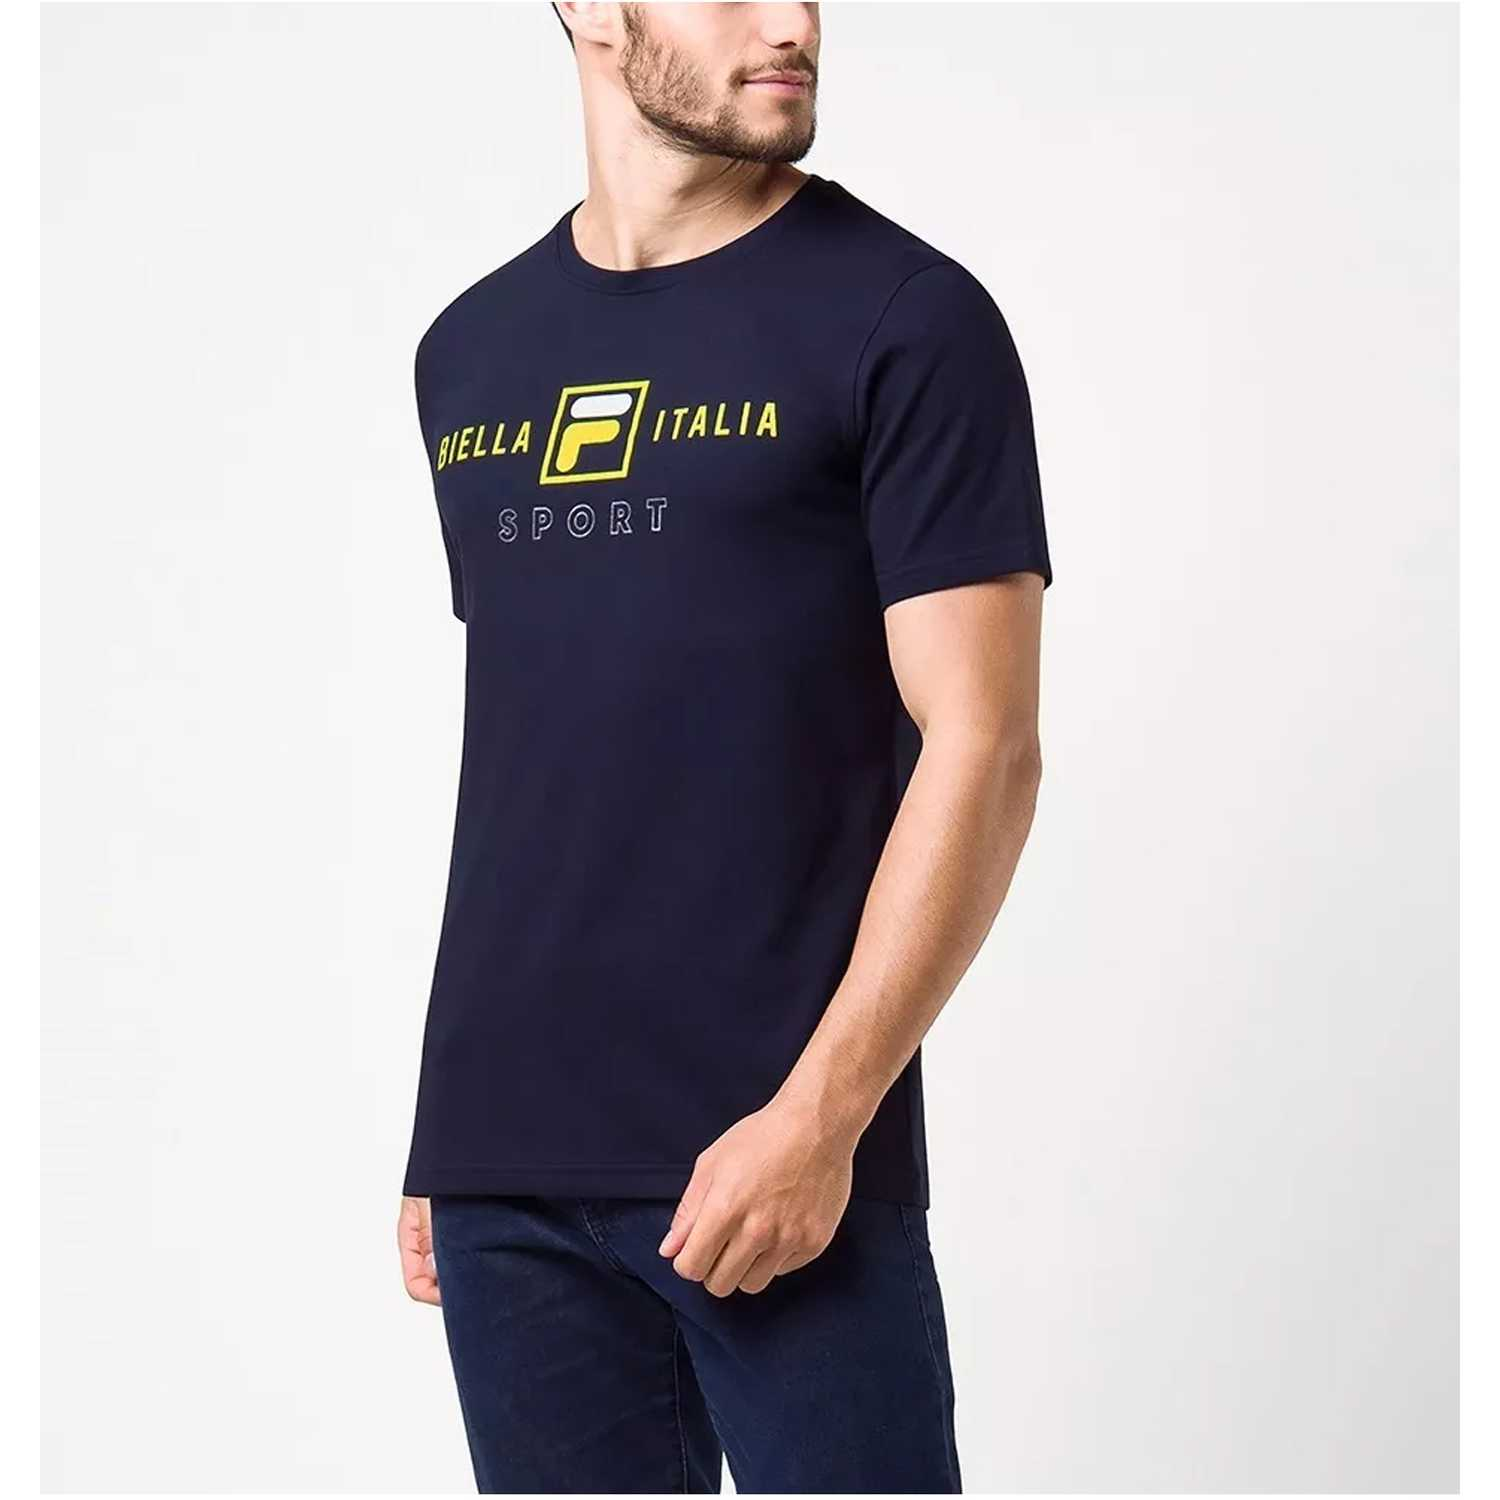 Fila camiseta masc. fila block colors Navy Polos